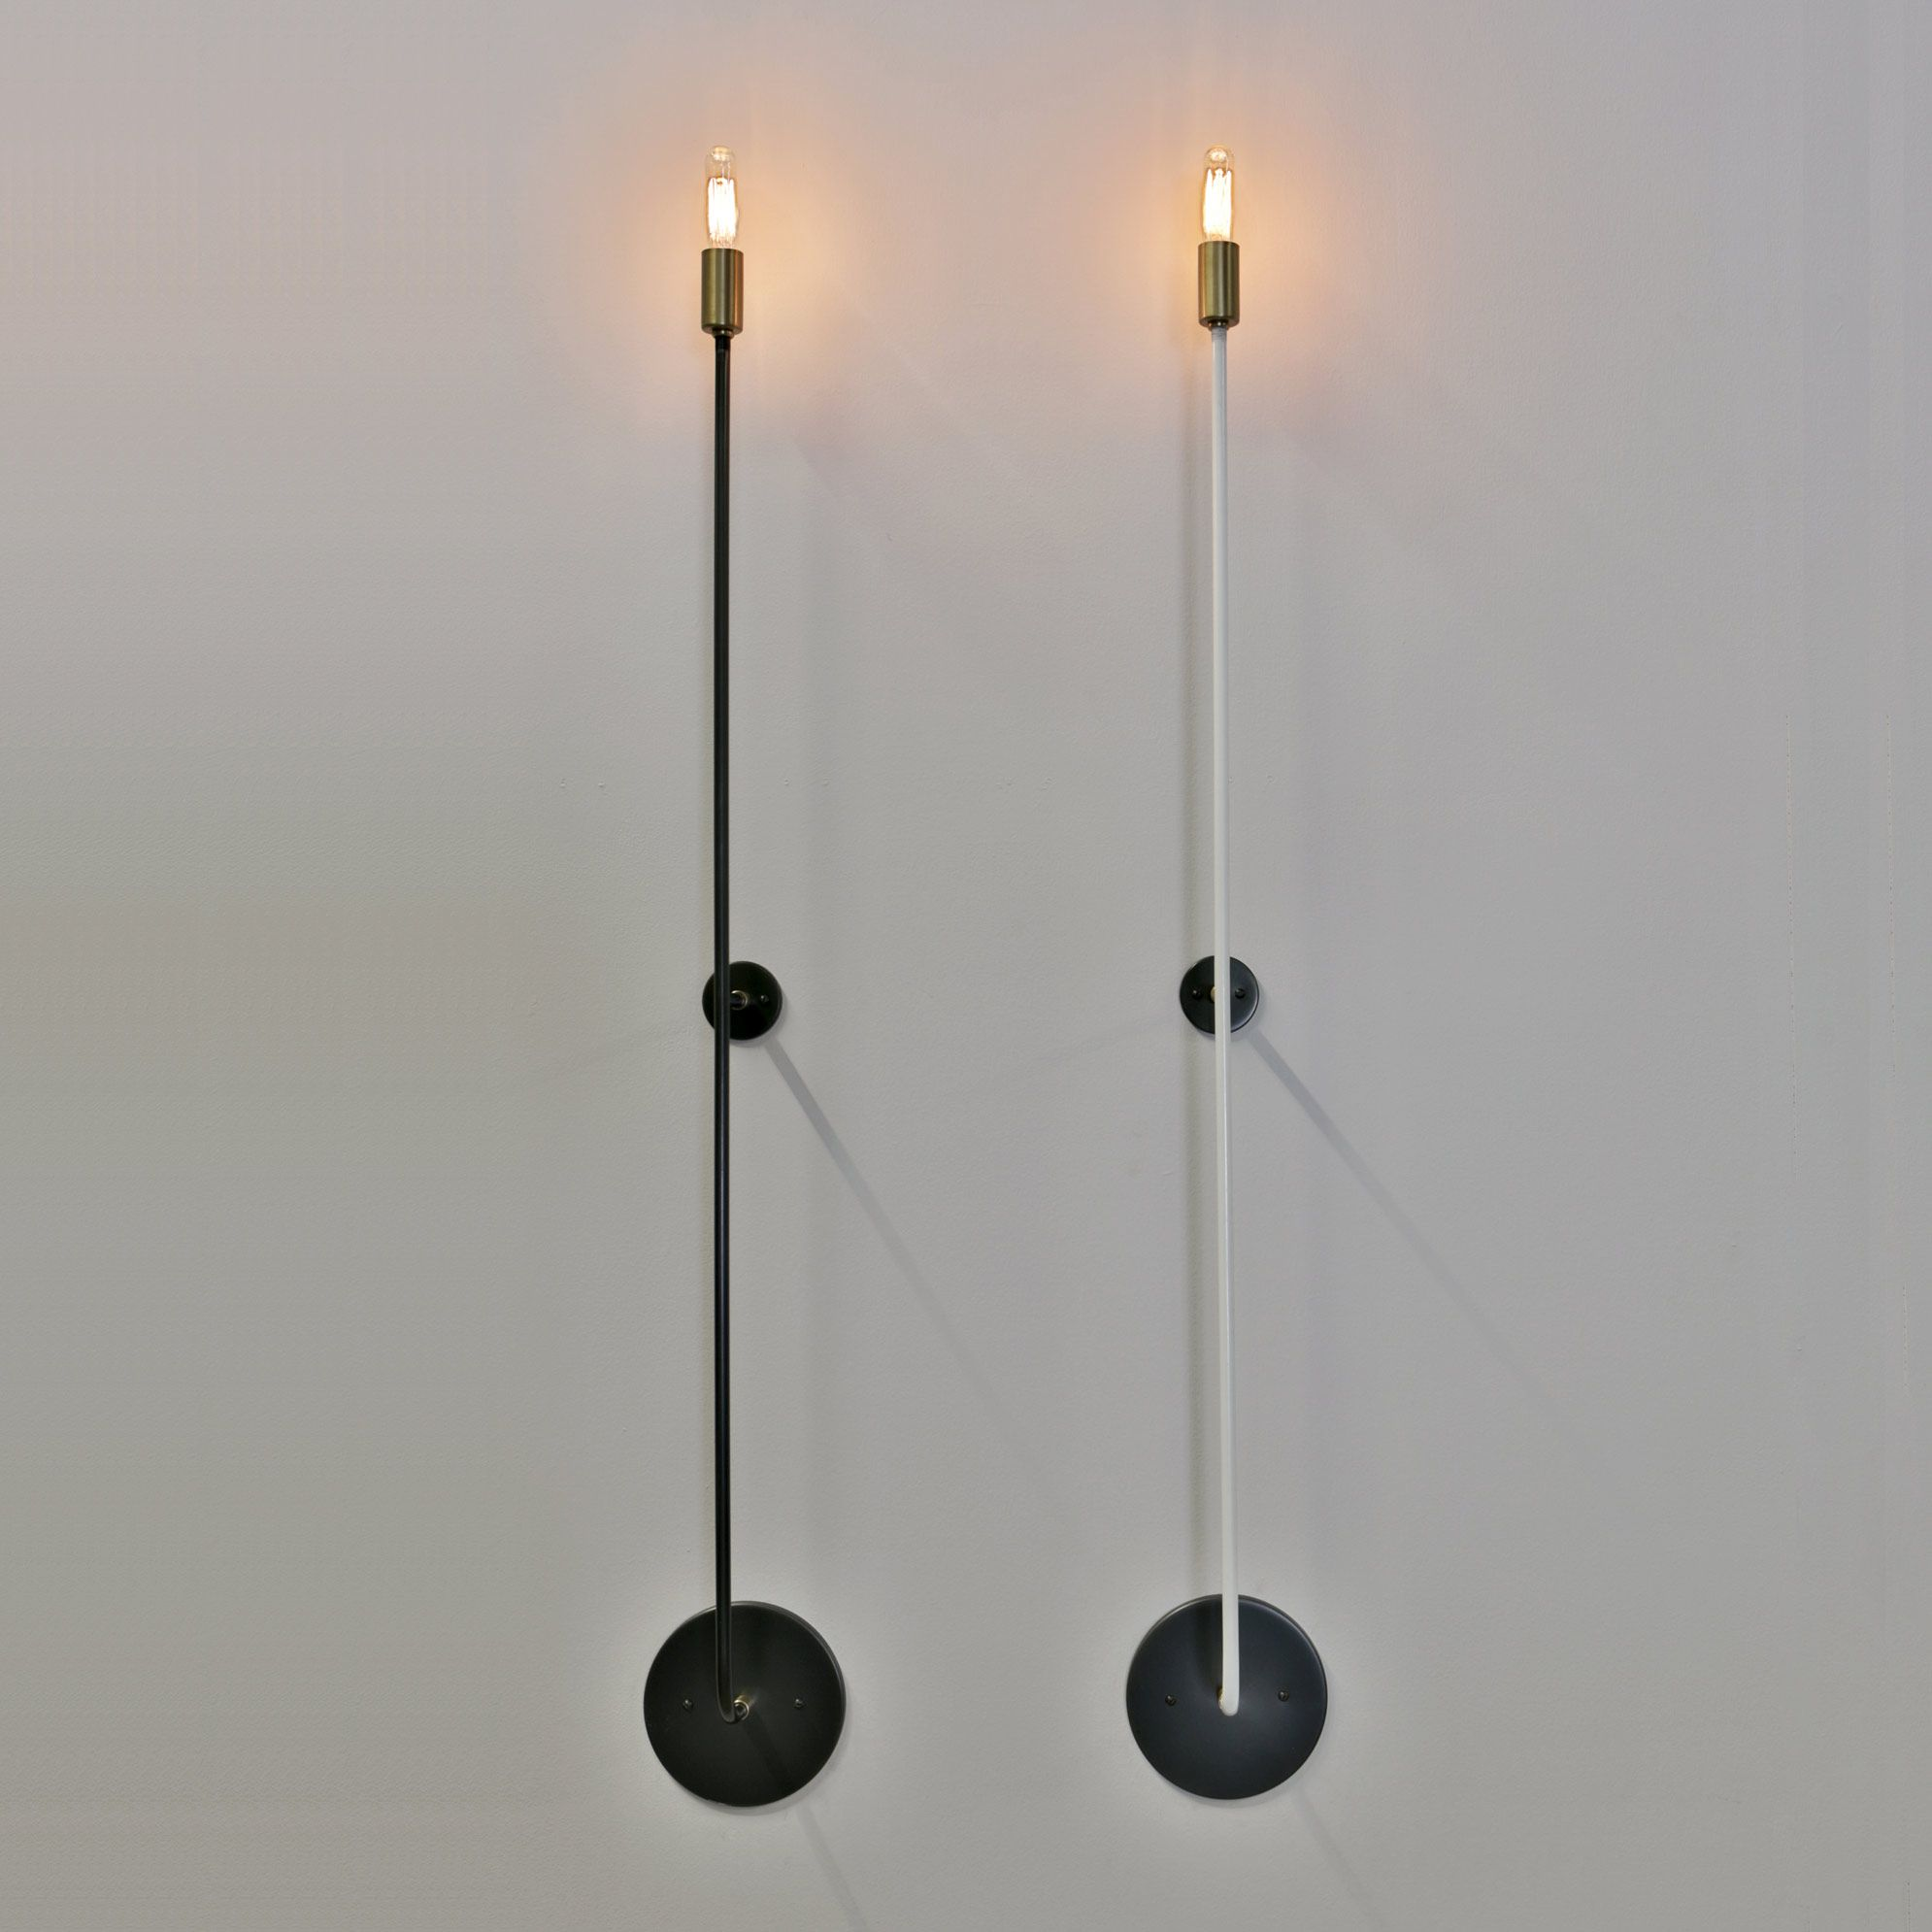 Stick Wall Light By John Beck Steel Jbsl Scb 38 Hw Plug In